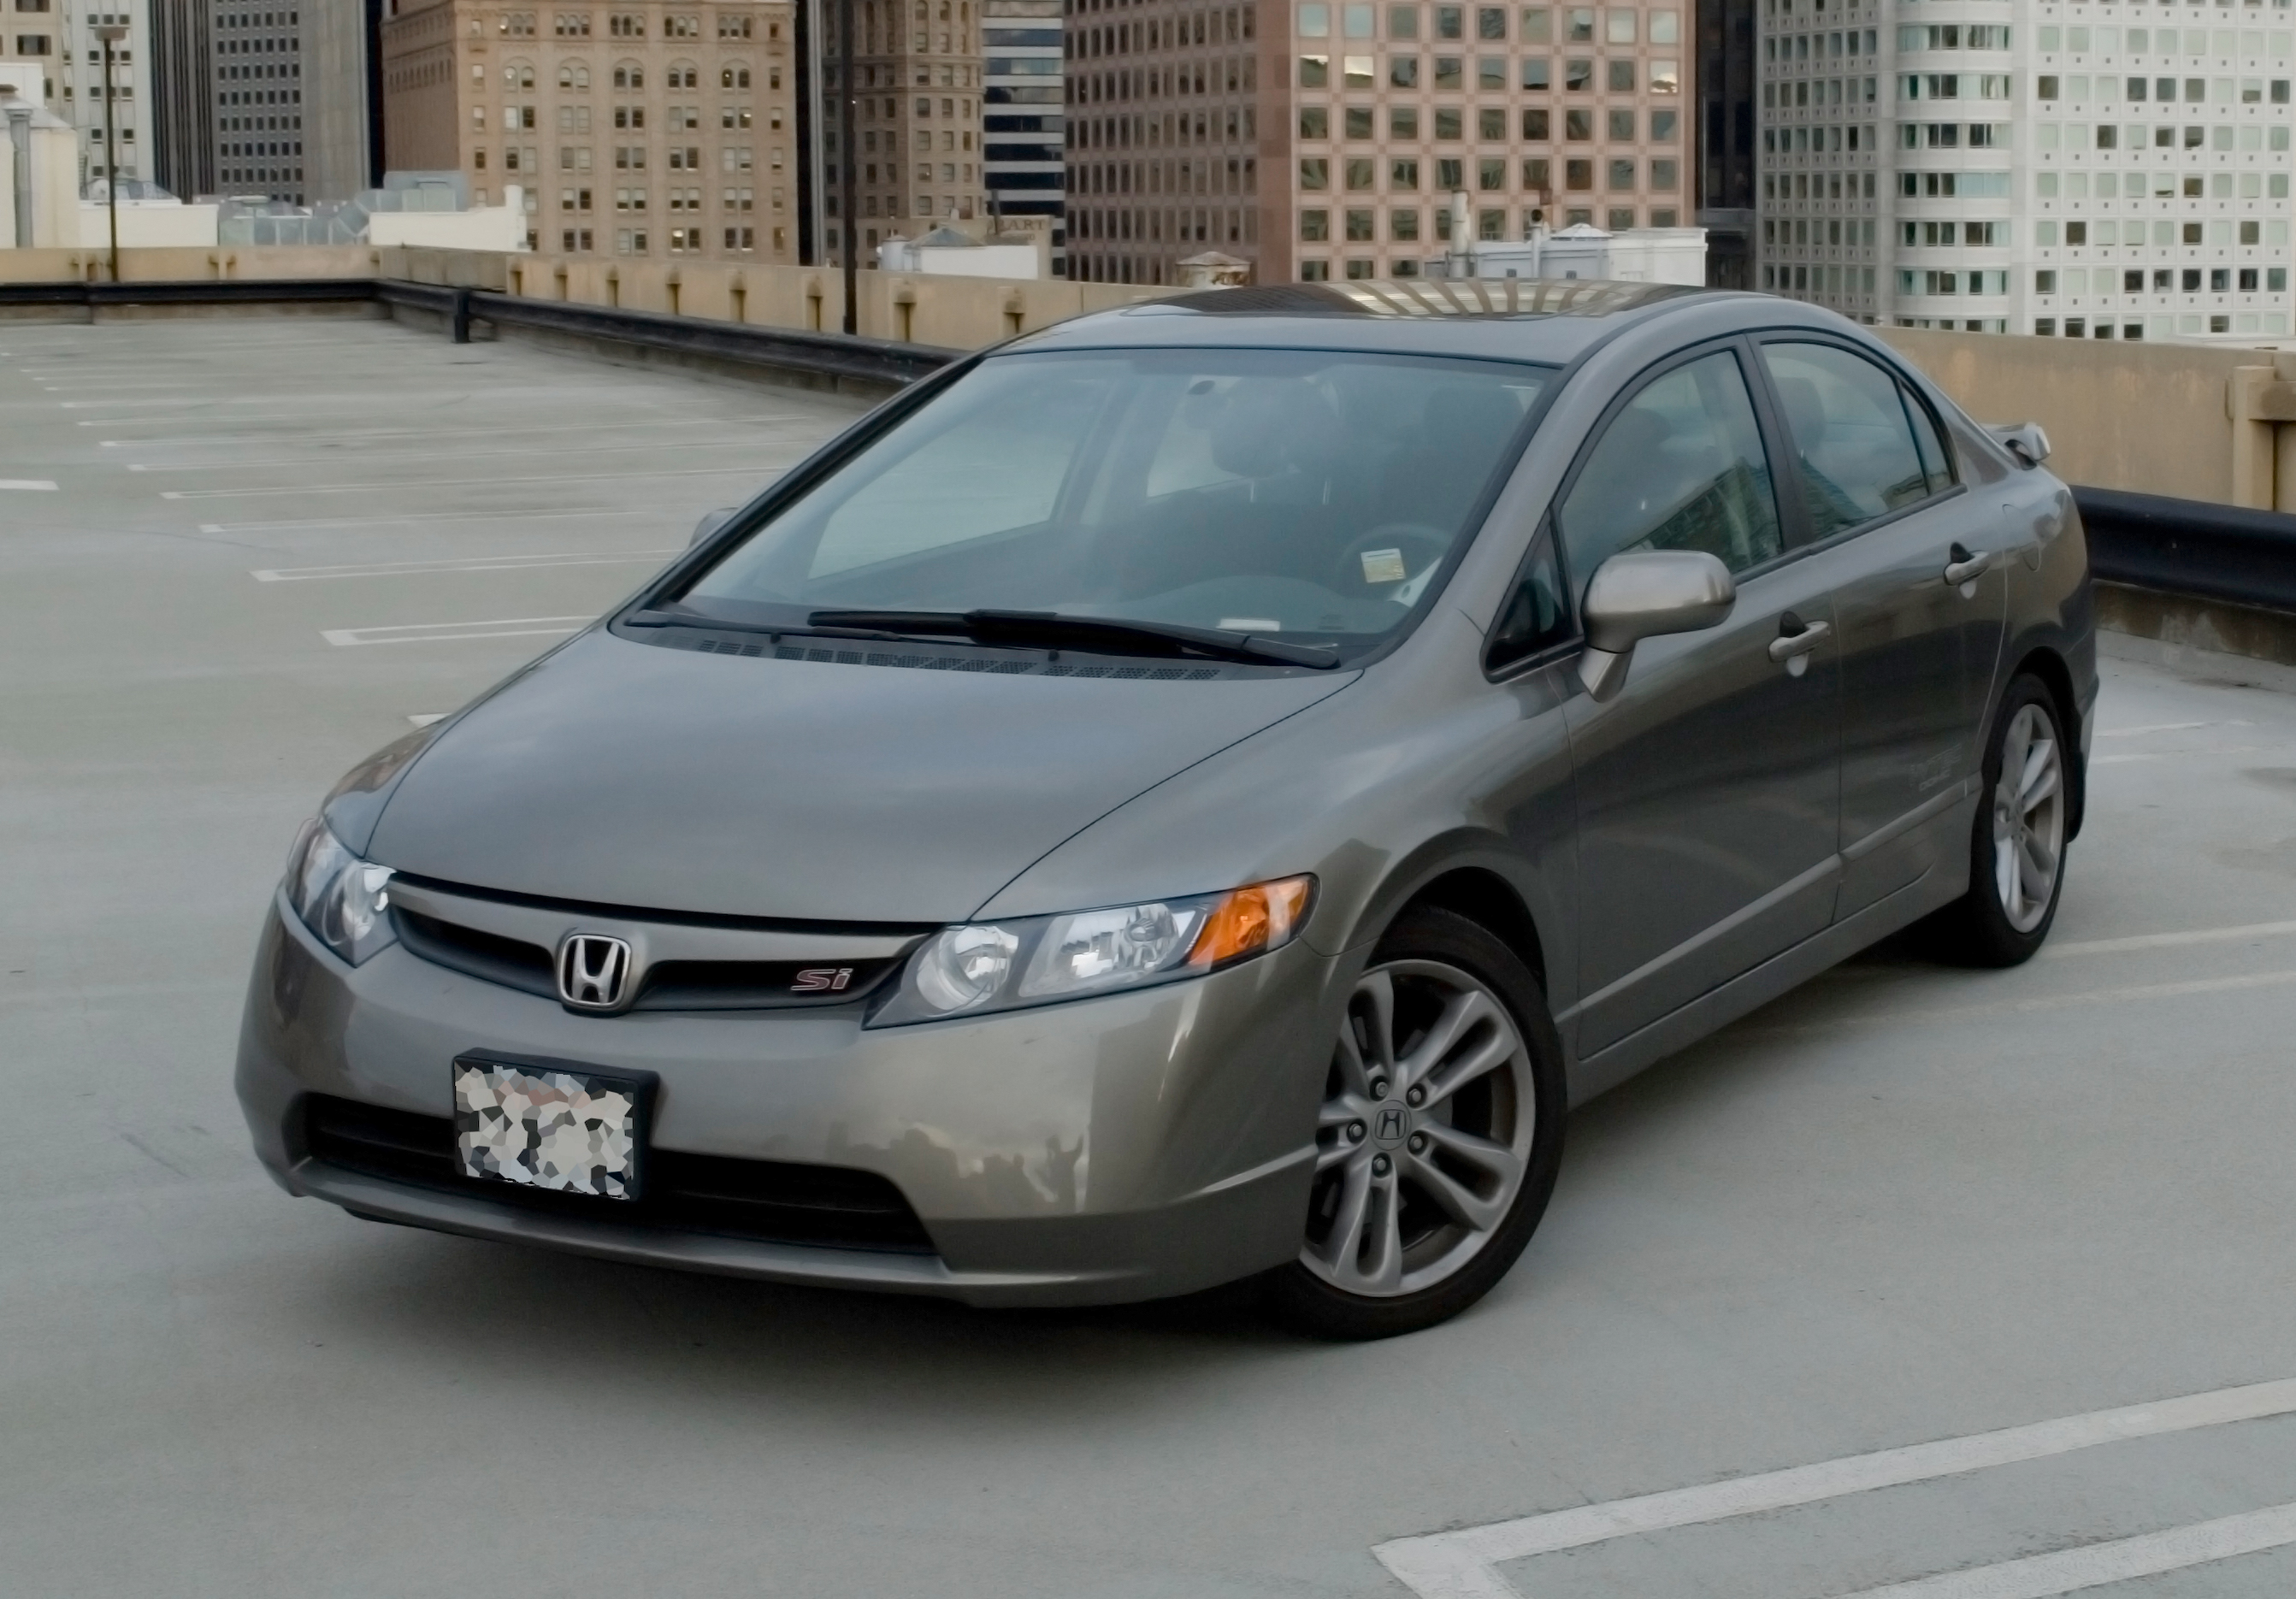 2006 Honda Civic #2